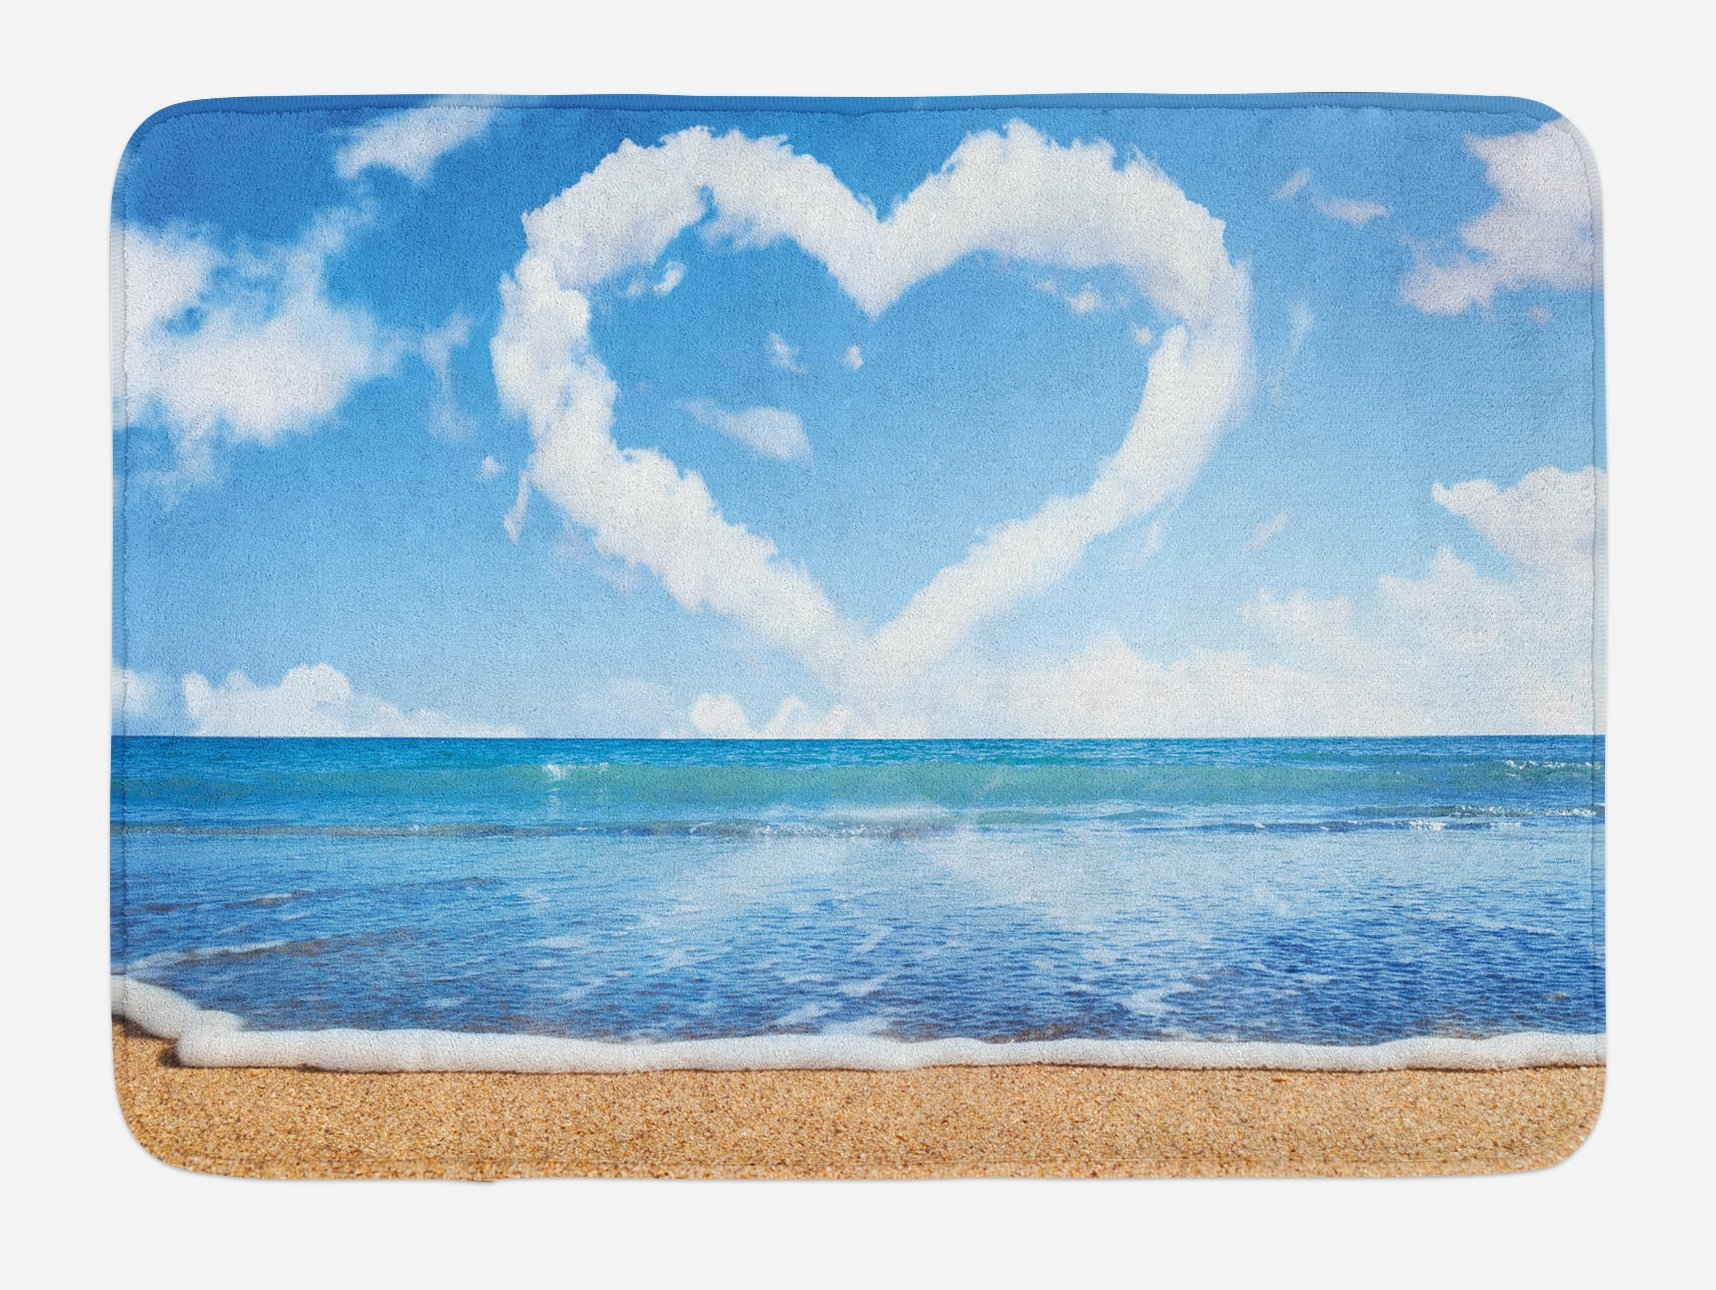 Ambesonne Valentines Day Bath Mat, Clouds in Clear Blue Sky Forming a Heart Shape Romantic Beach, Plush Bathroom Decor Mat with Non Slip Backing, 29.5 W X 17.5 W Inches, Blue White Sand Brown